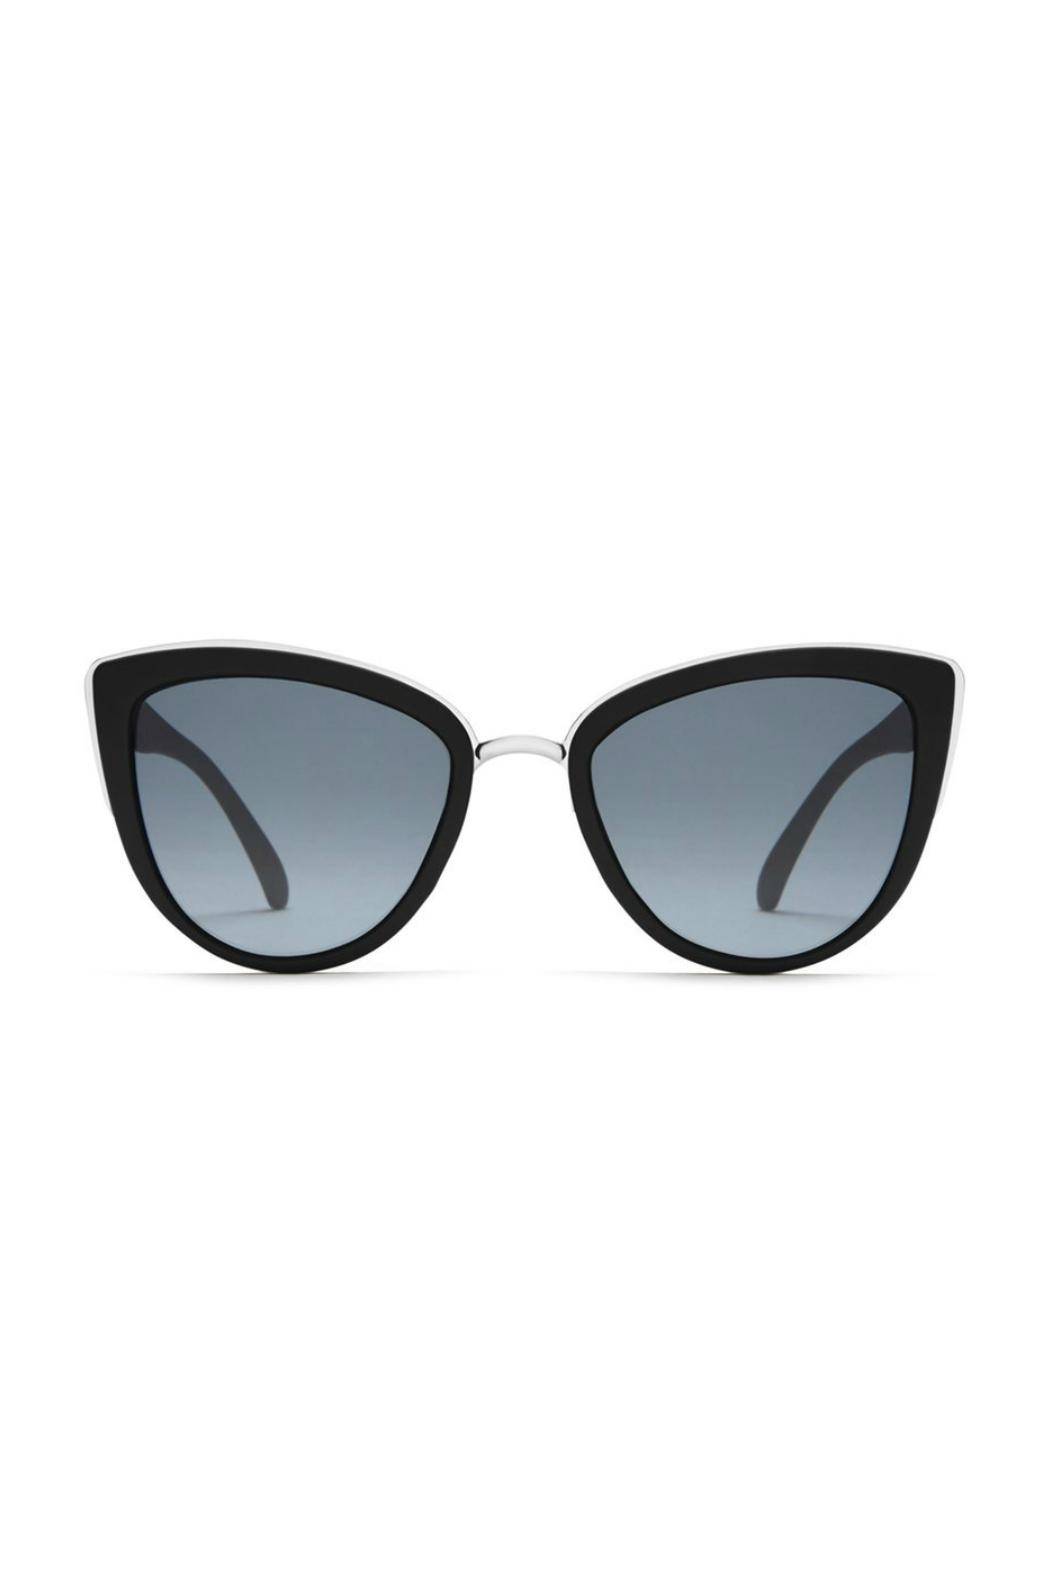 f9c8294528 Quay Australia My Girl Sunglasses from New Jersey by Pretty Edgy ...